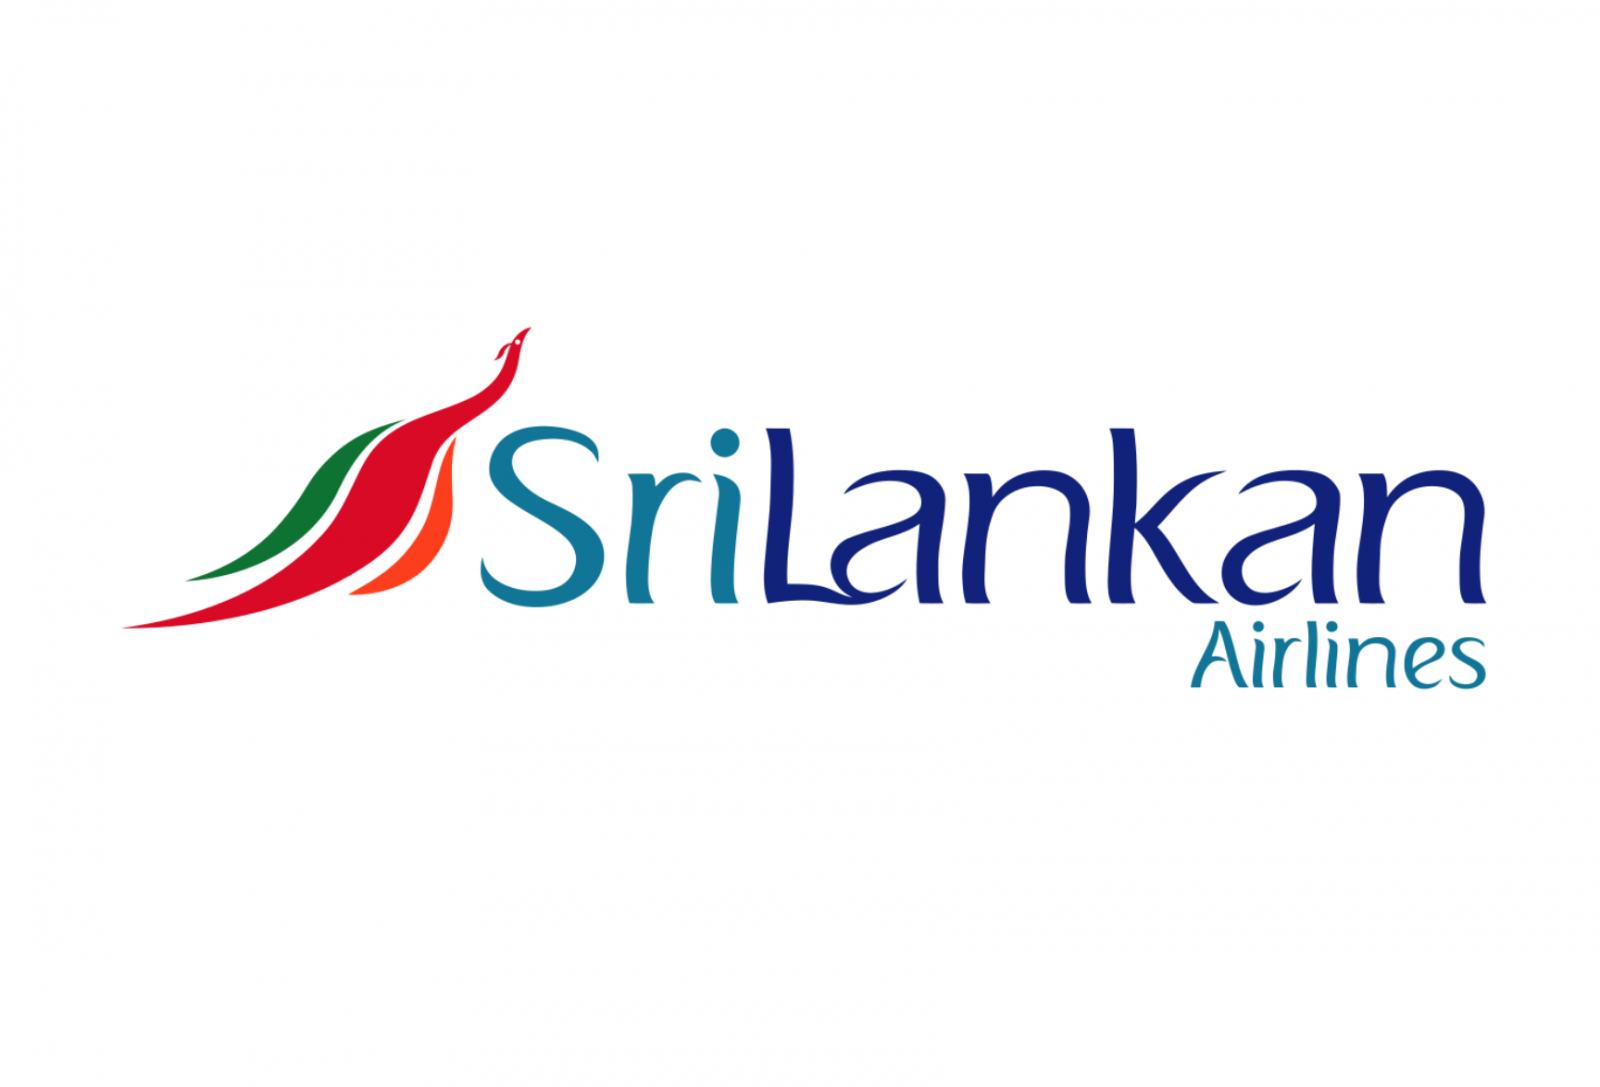 ICTS is re-selected by SriLankan Airlines for the provision of security services at London Heathrow Airport